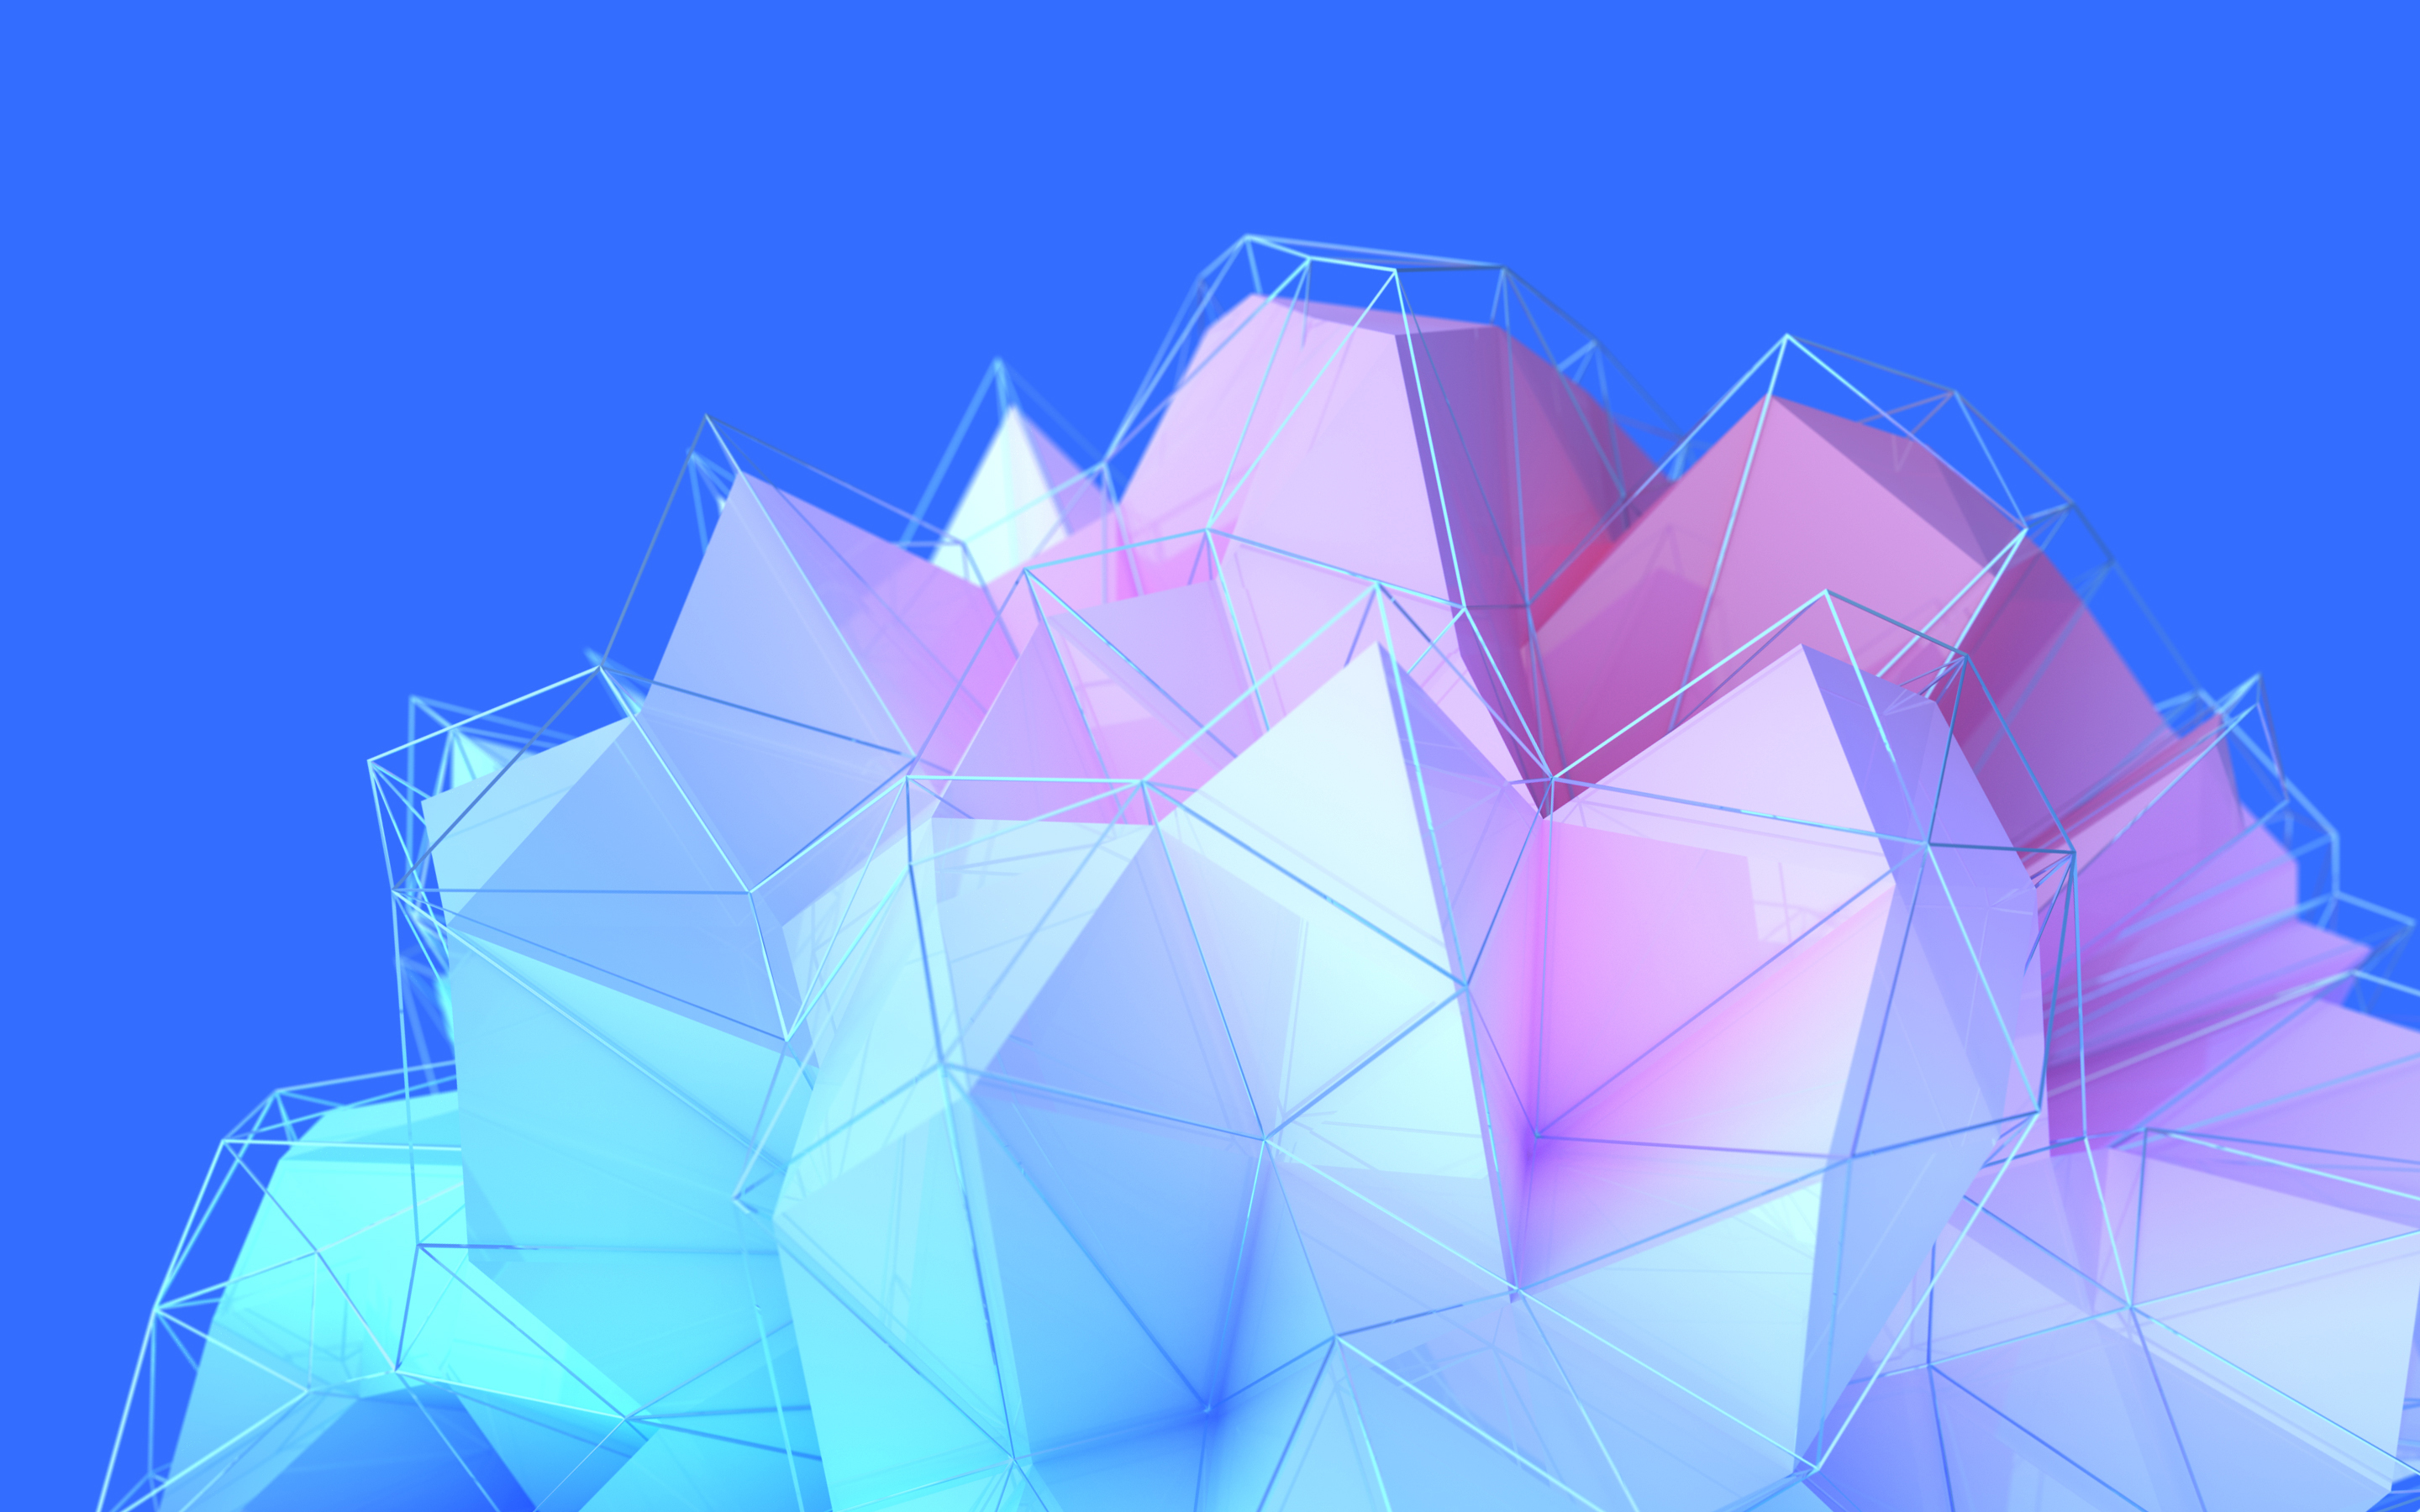 3D Shapes4599115342 - 3D Shapes - Shapes, Geometic